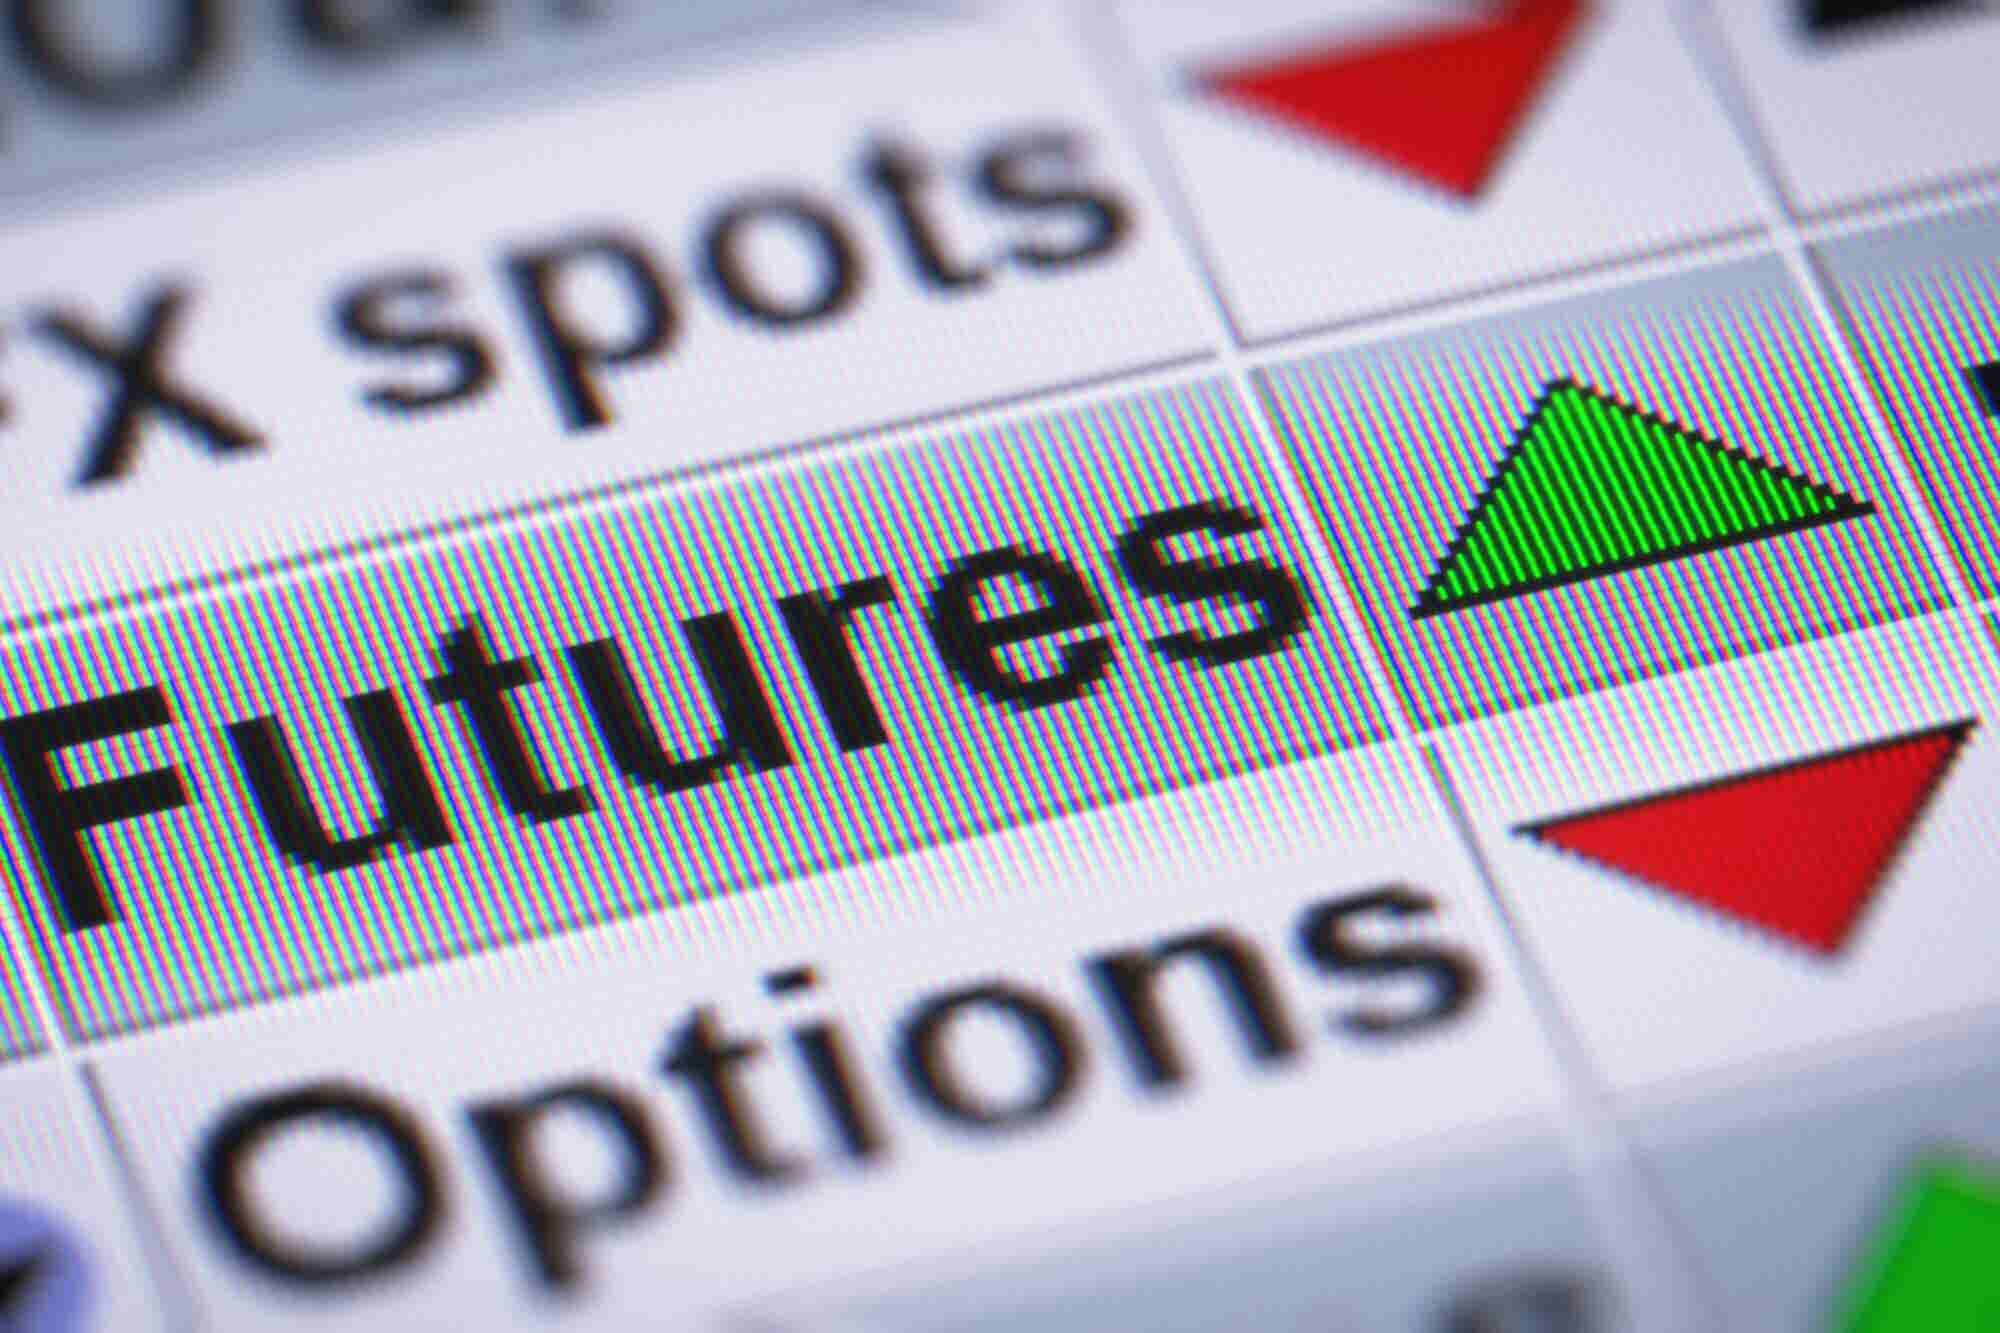 Futures Trading Could Be the Catalyst for Mass Adoption of Cryptocurrency